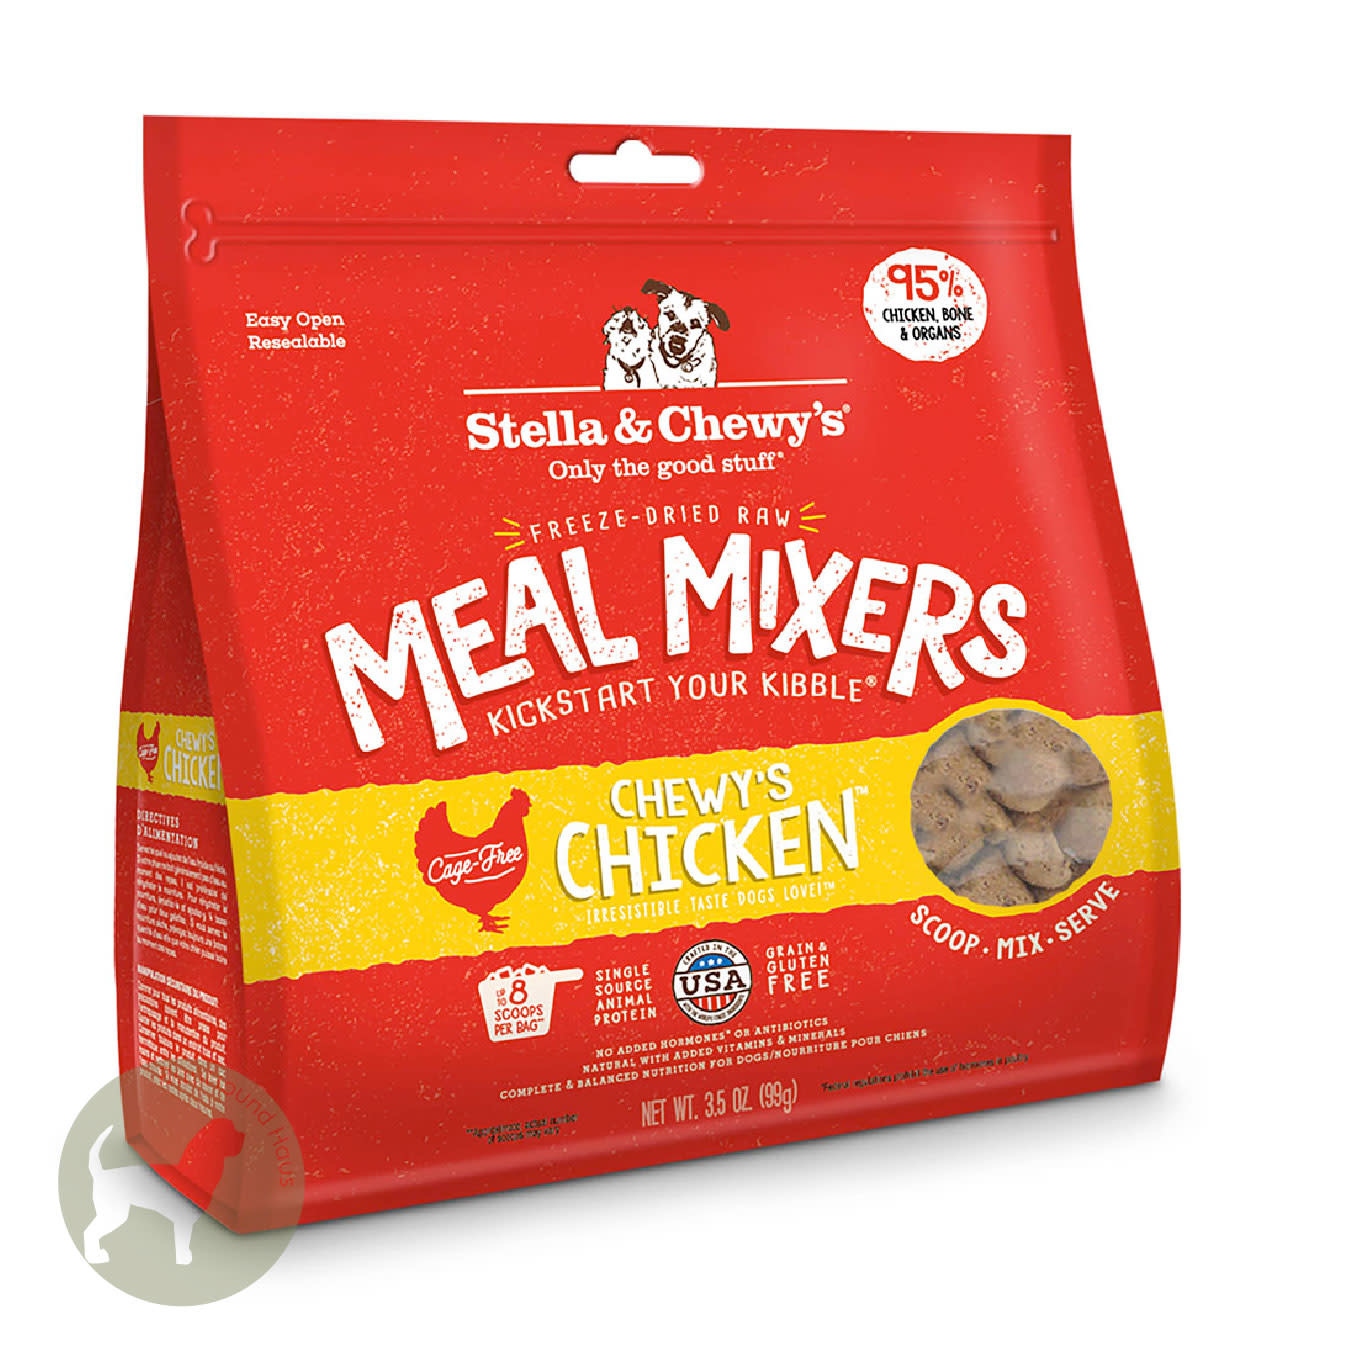 Stella & Chewy's Stella & Chewy's Meal Mixer Chewy's Chicken, 3.5oz